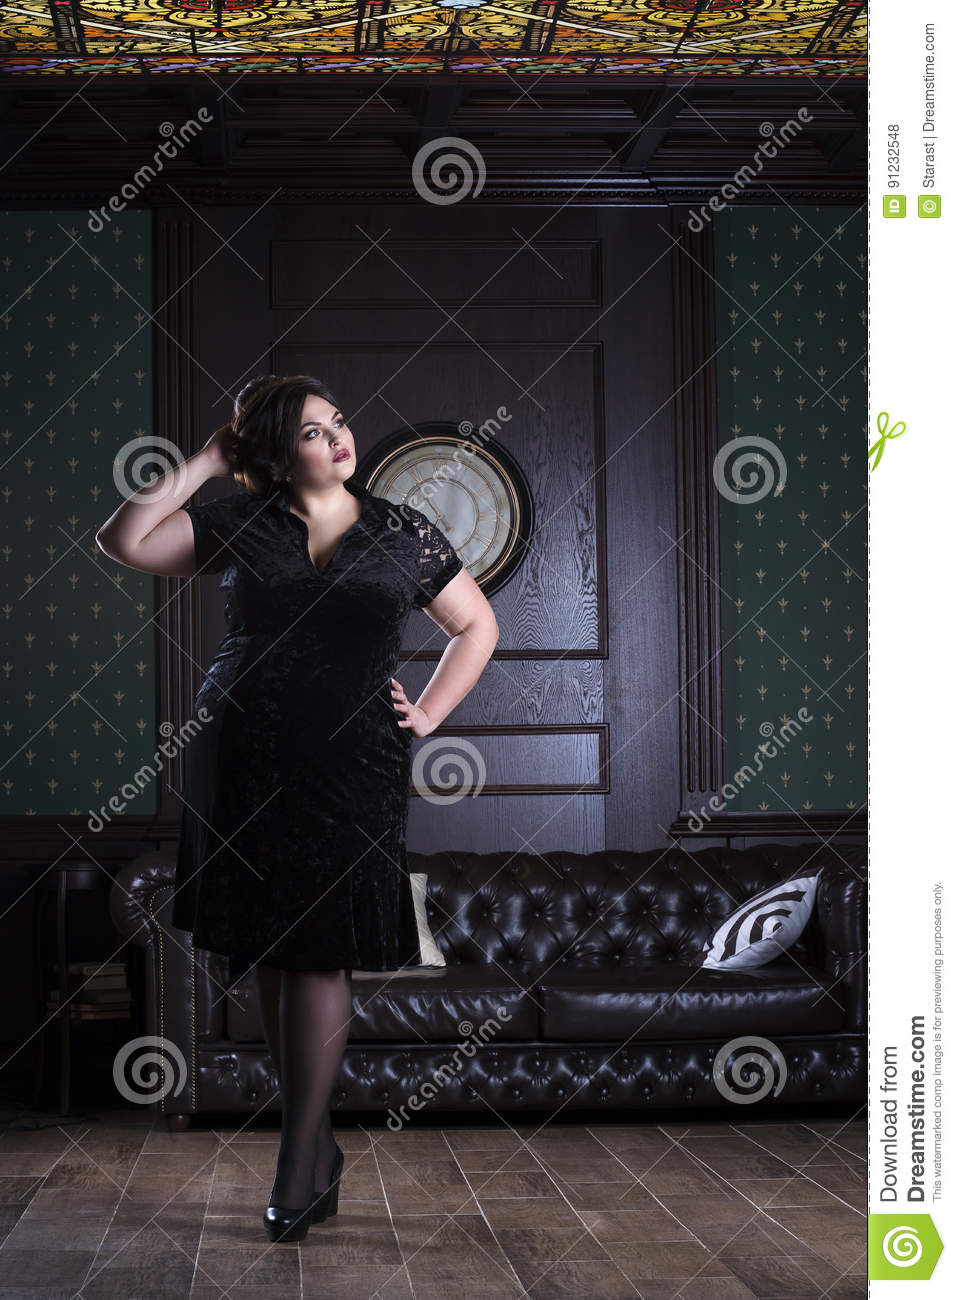 Plus size fashion model in black evening dress, fat woman on luxury interior, overweight female body, full length portrait